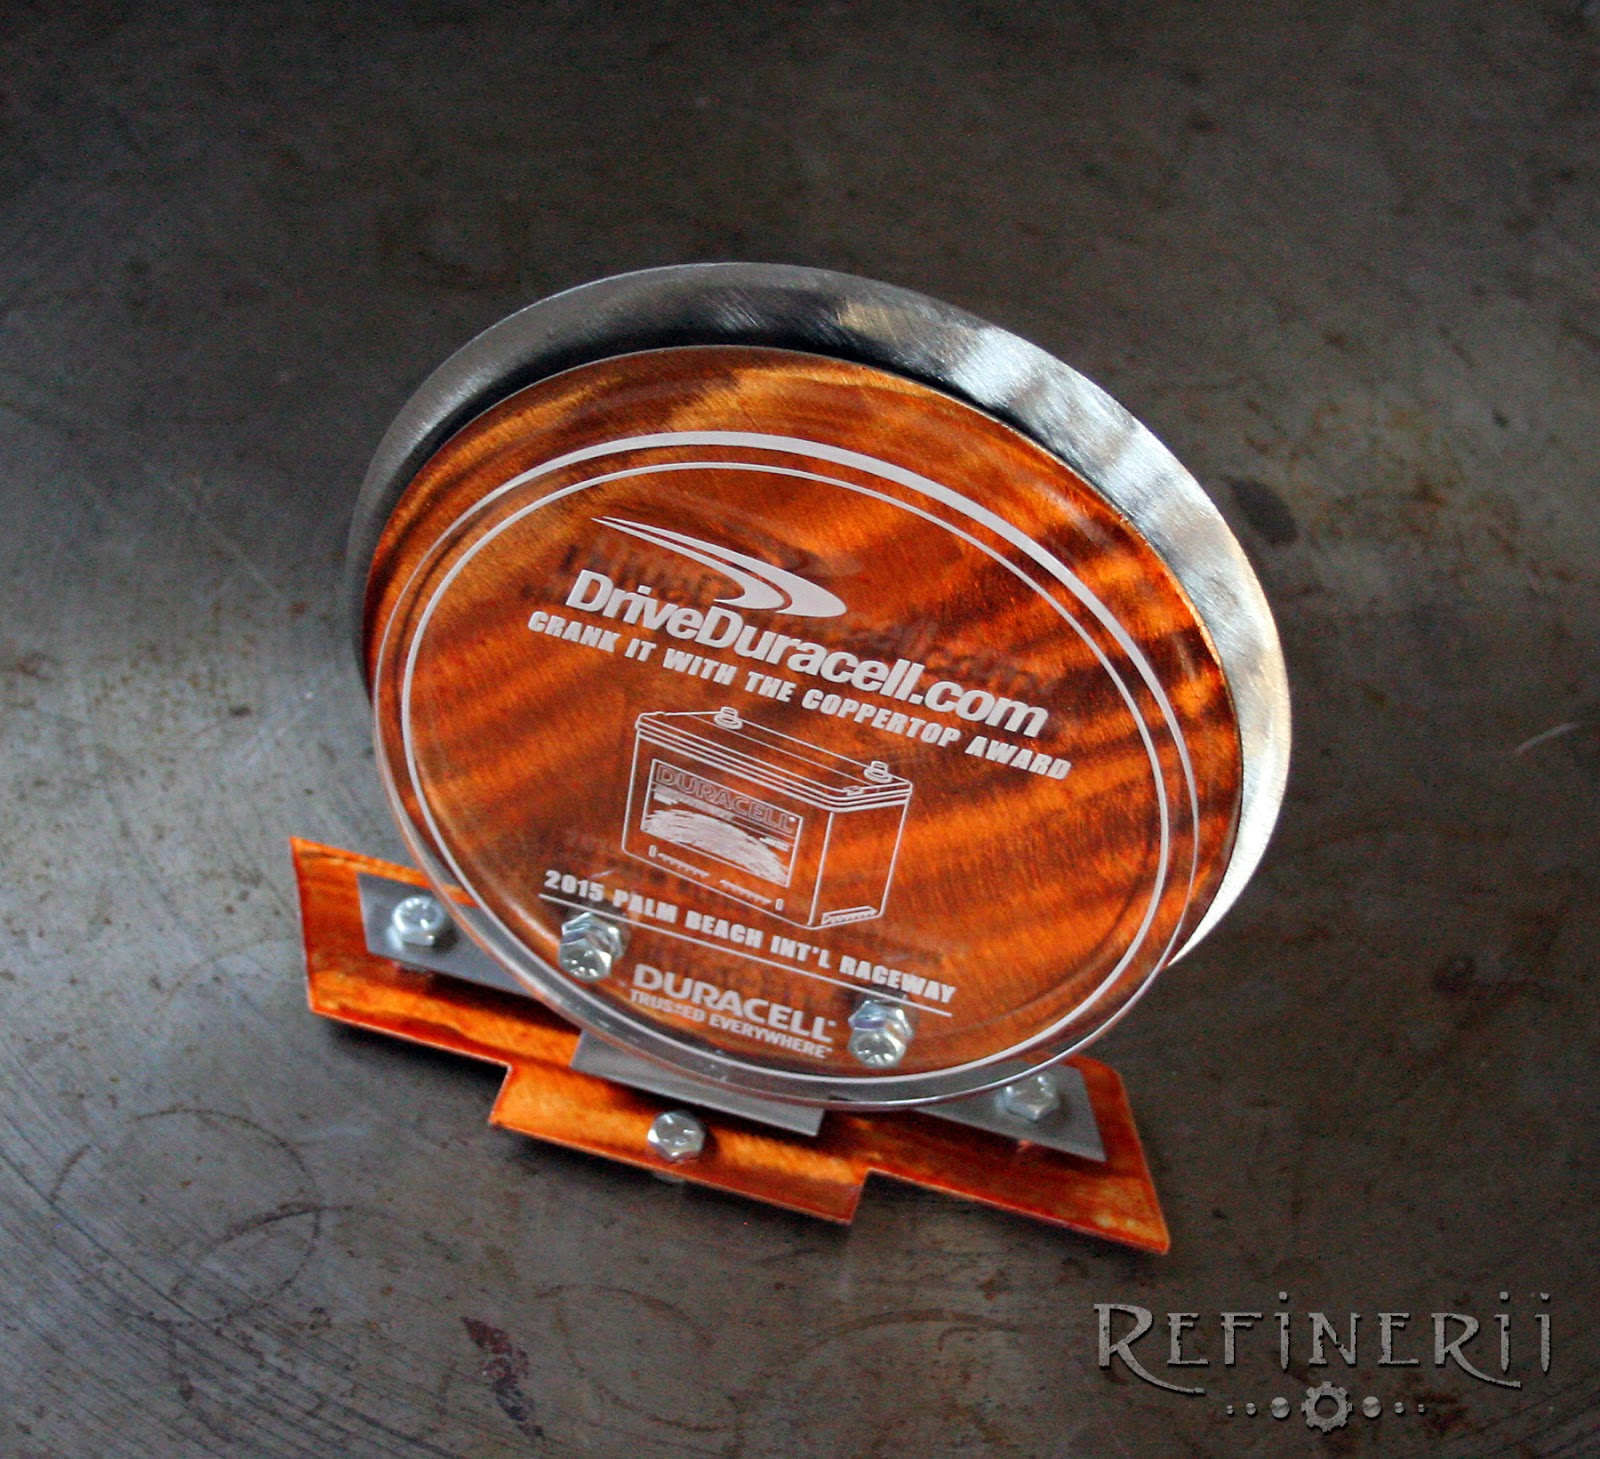 mixed metals trophy made for driveduracell.com by refinerii.net